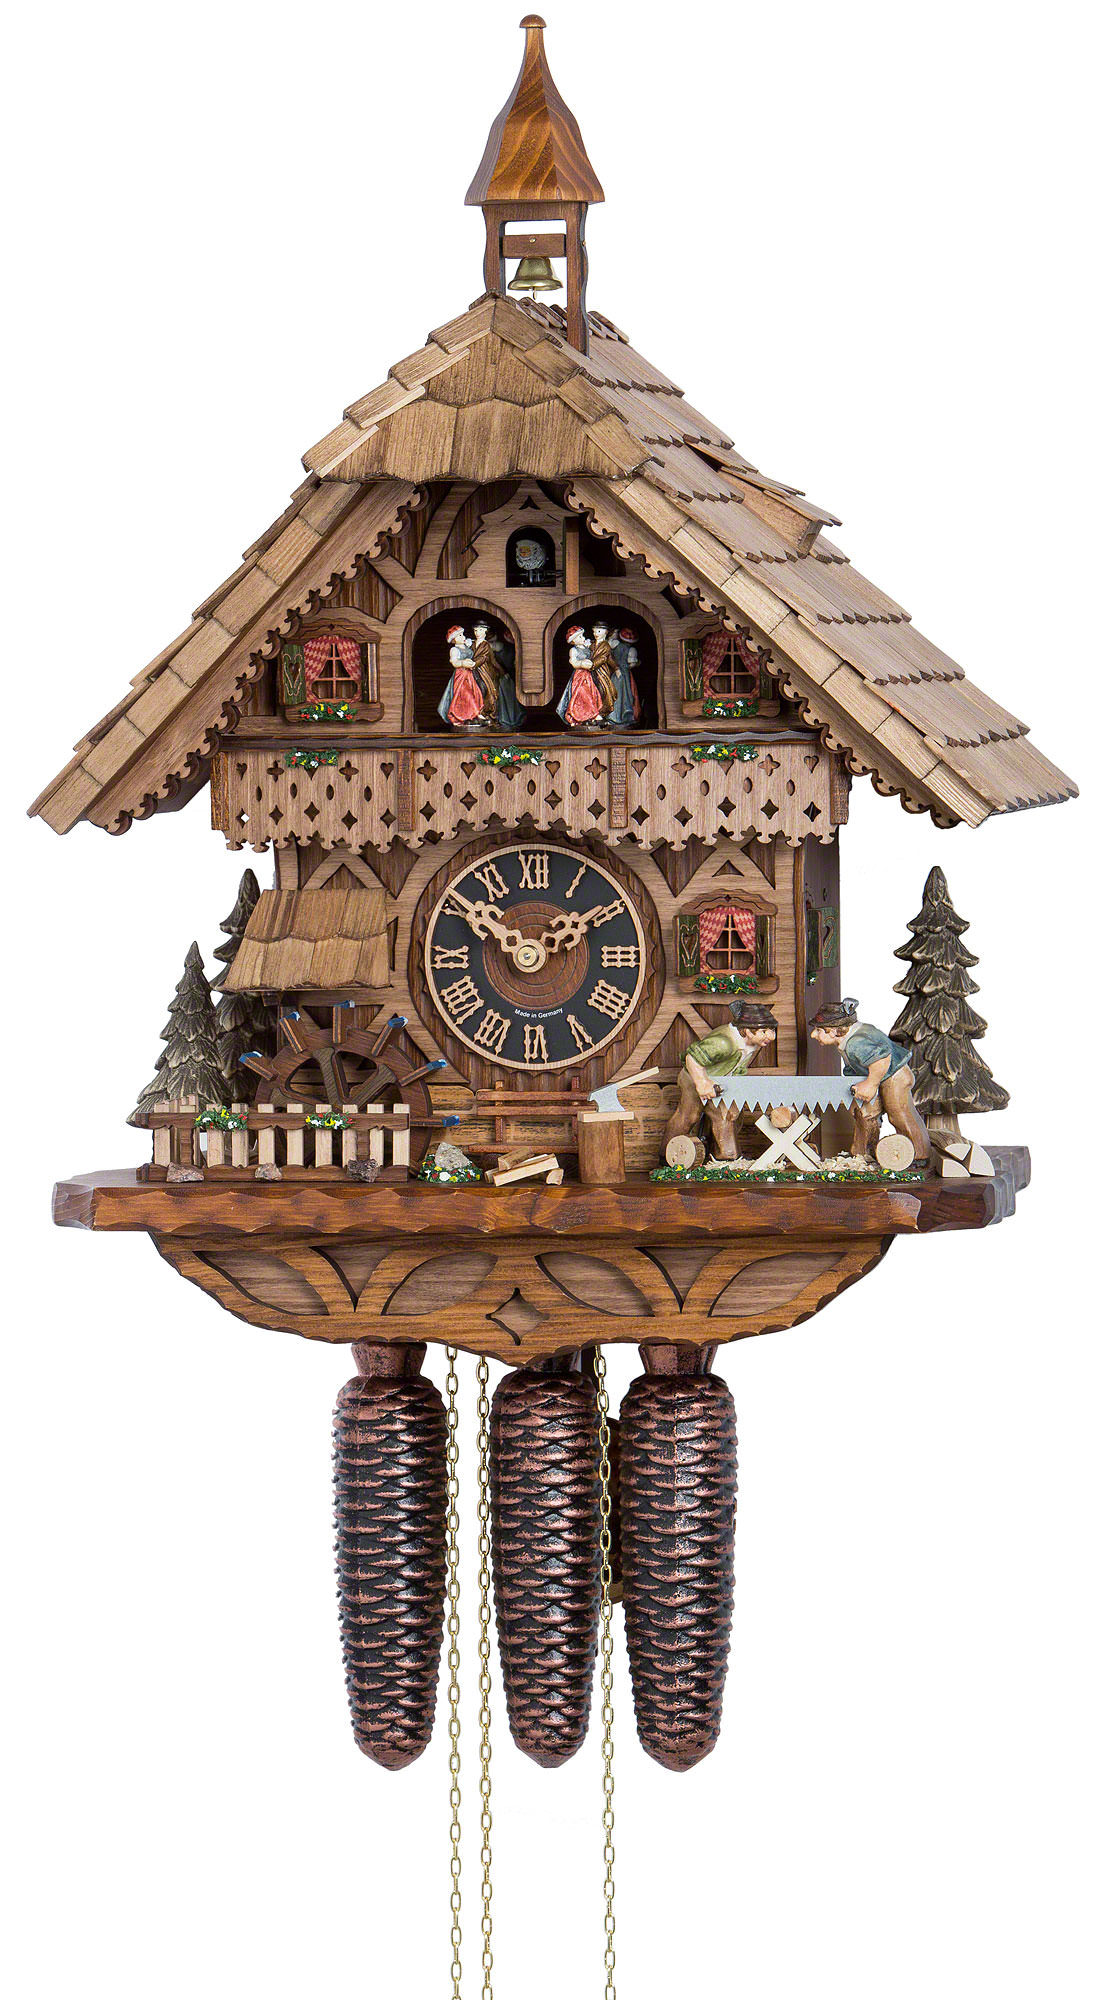 Cuckoo Clock 8-day-movement Chalet-Style 39cm by Hönes - 86258T